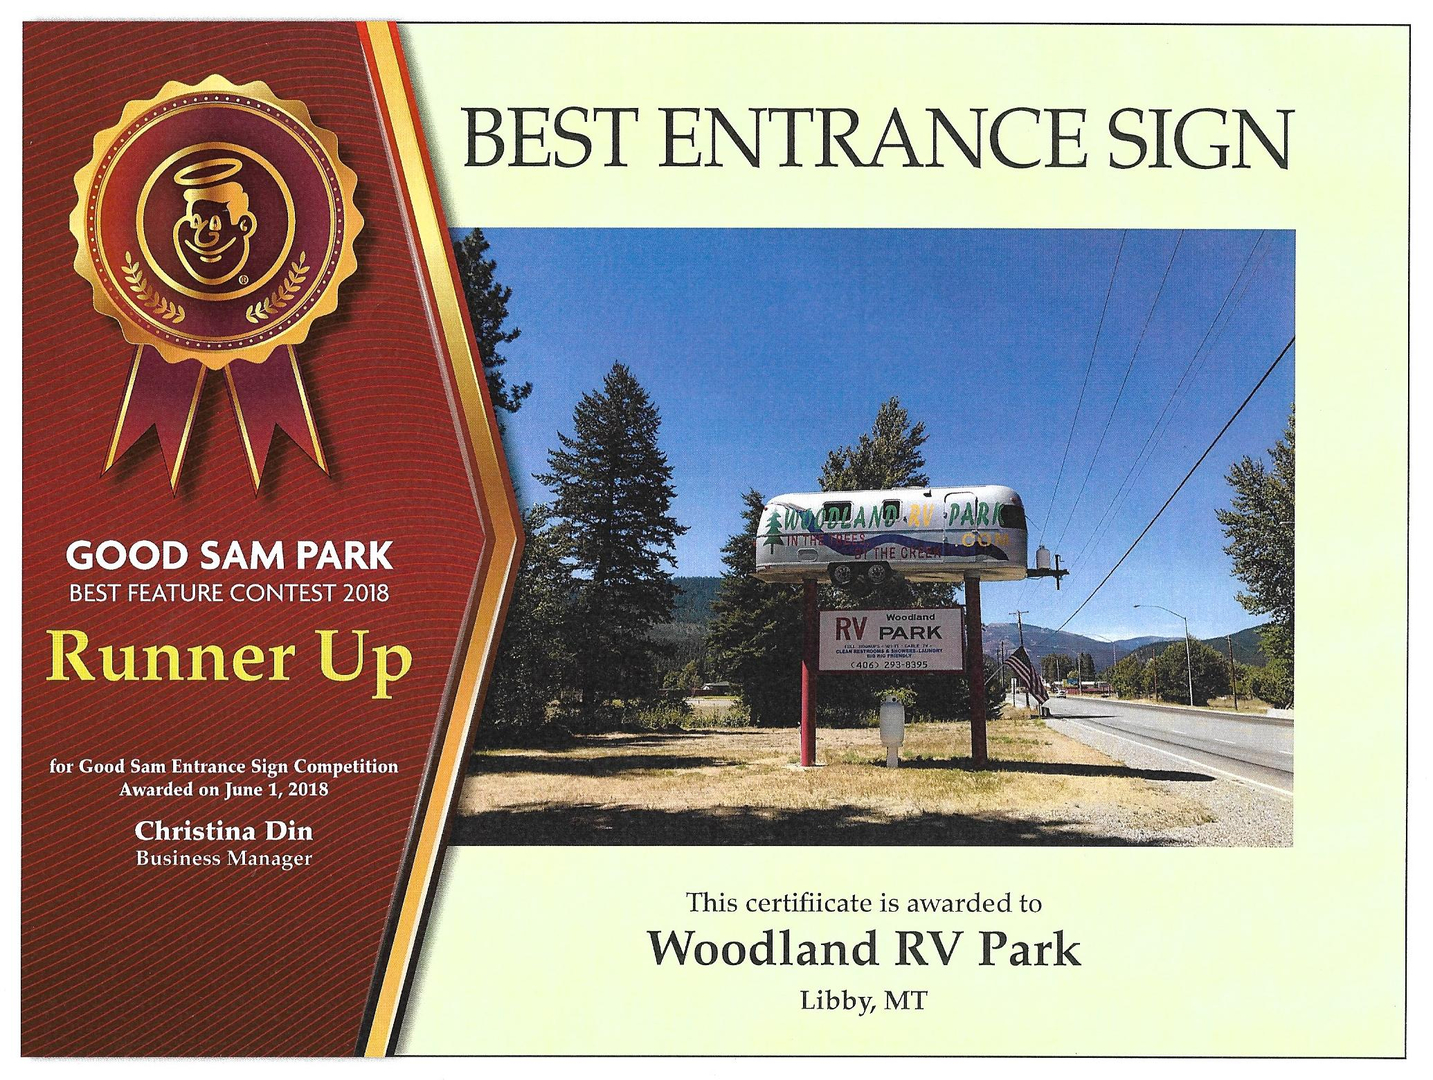 Woodland Rv Park - Rv Campgrounds, Camp Ground, Camping Sites